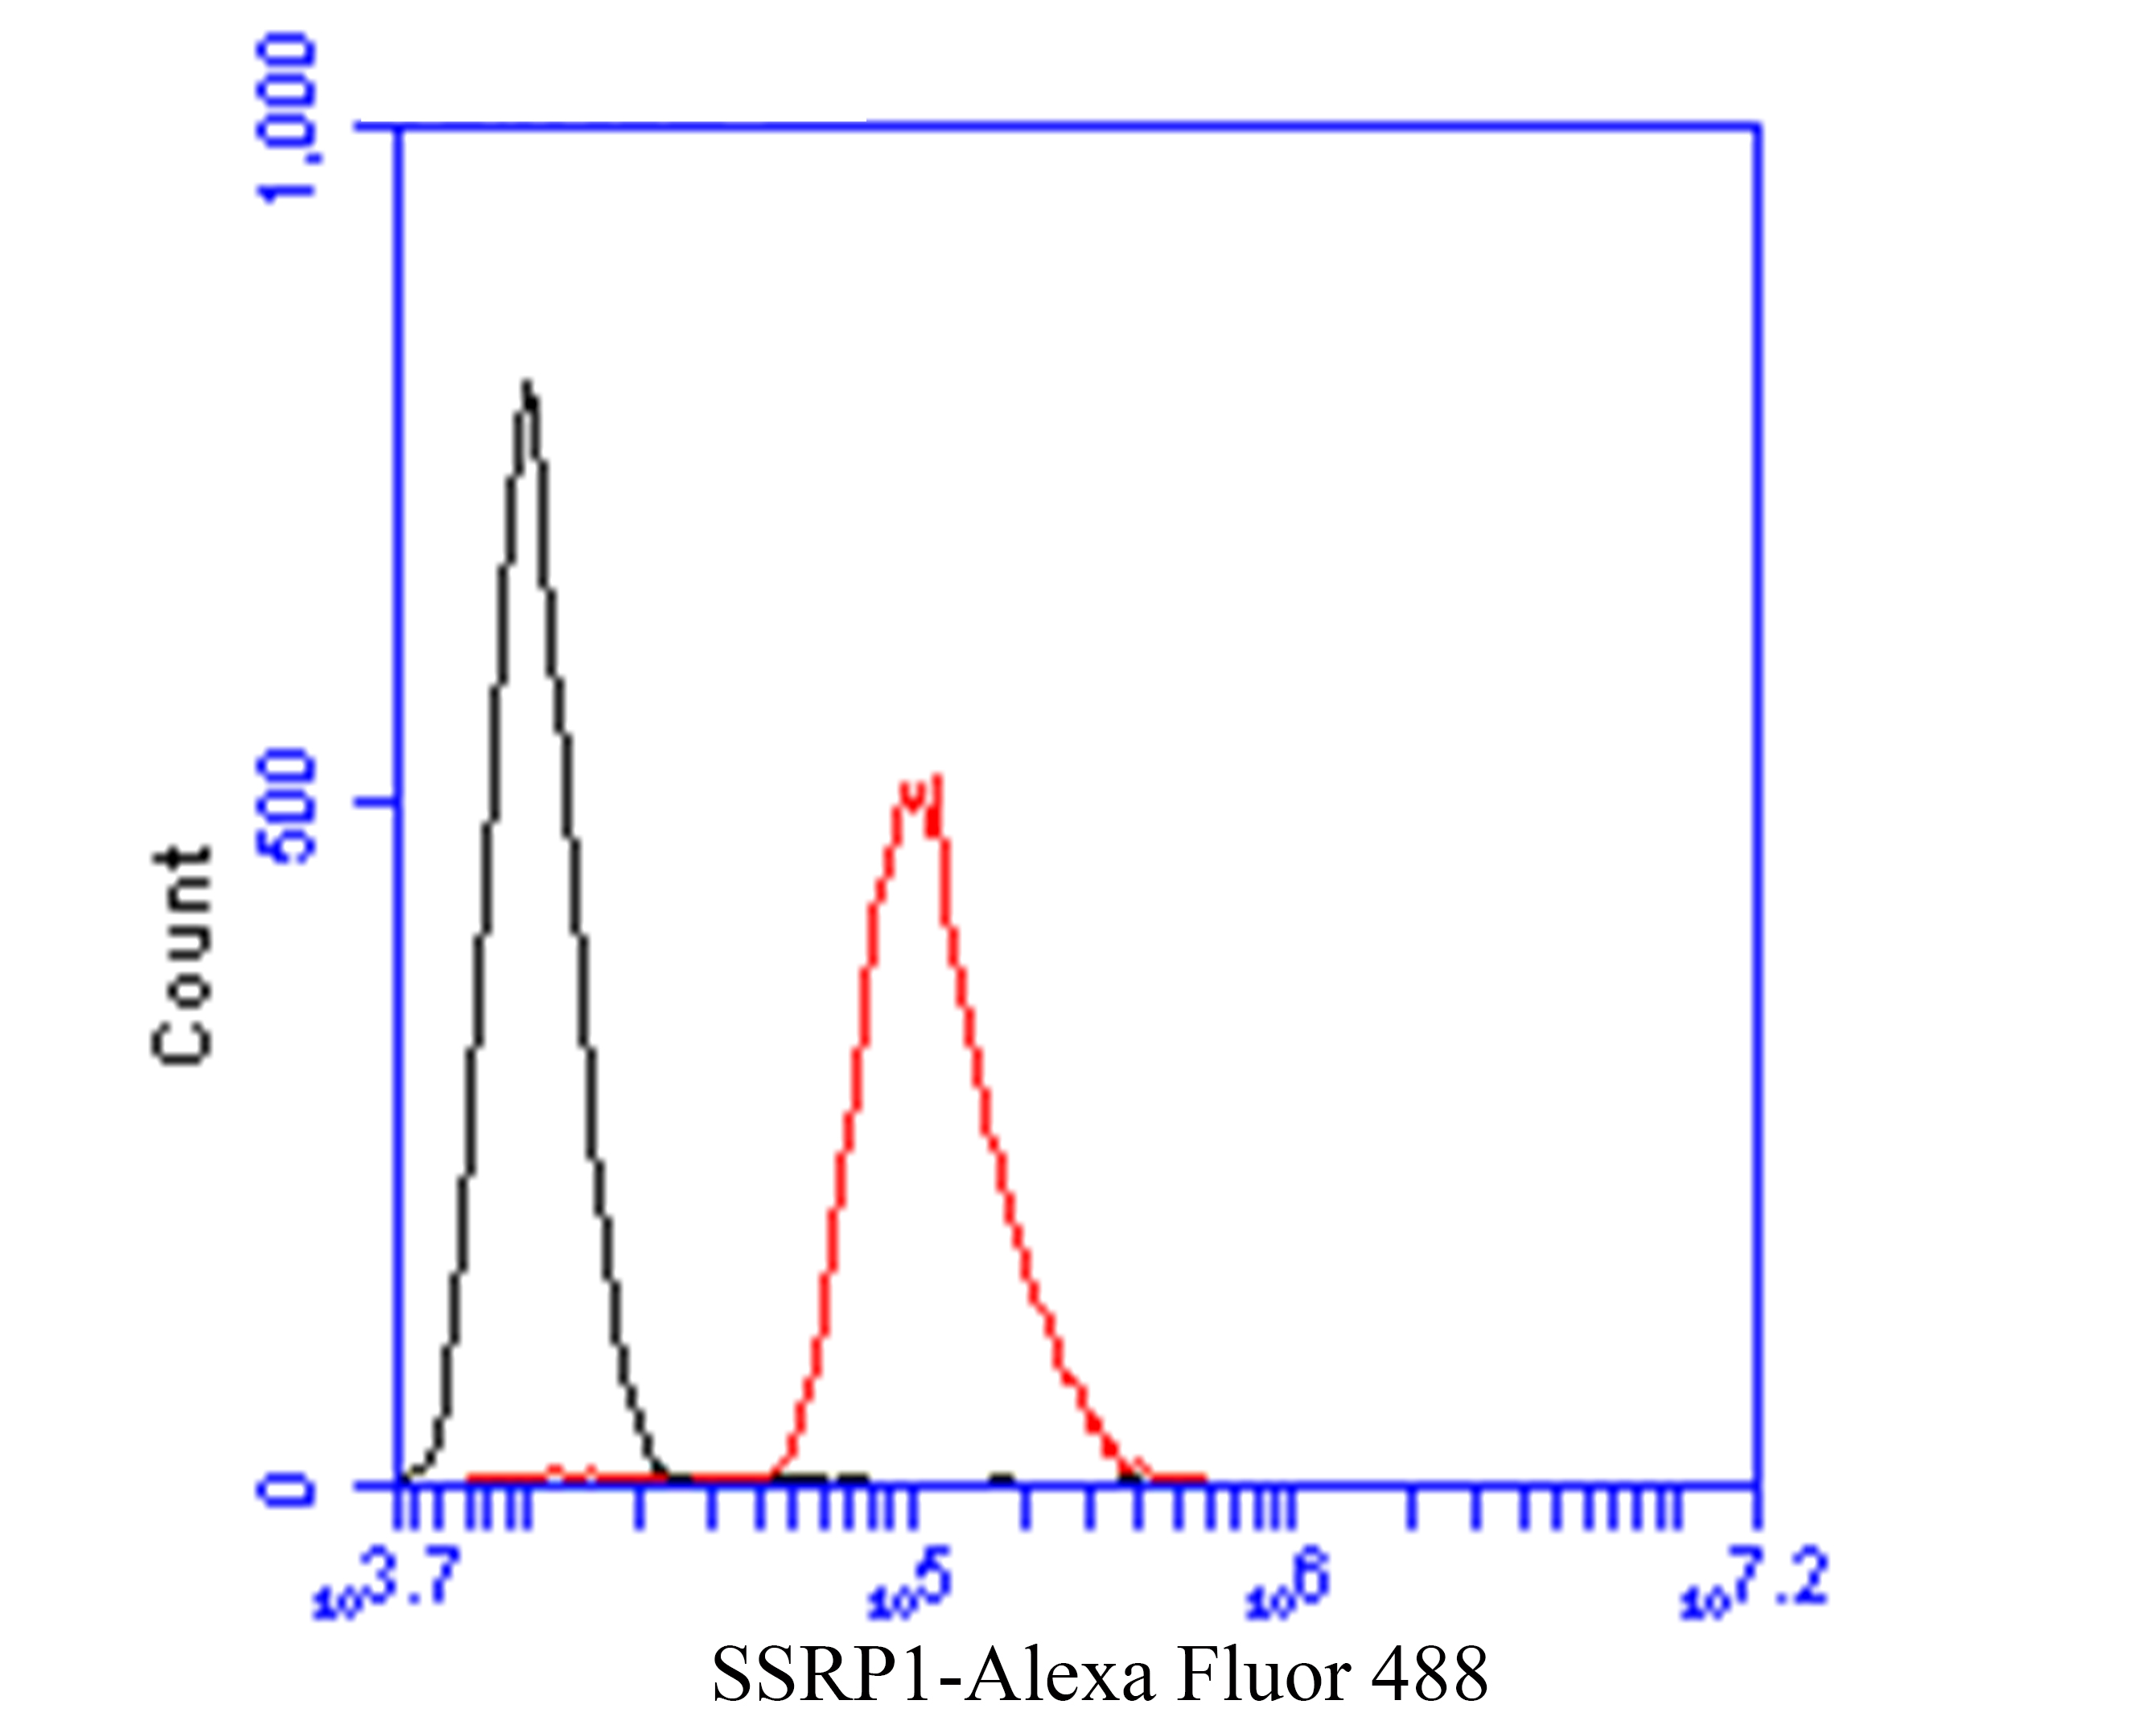 Flow cytometric analysis of SSRP1 was done on SH-SY5Y cells. The cells were fixed, permeabilized and stained with the primary antibody (ER1901-13, 1/50) (red). After incubation of the primary antibody at room temperature for an hour, the cells were stained with a Alexa Fluor 488-conjugated Goat anti-Rabbit IgG Secondary antibody at 1/1000 dilution for 30 minutes.Unlabelled sample was used as a control (cells without incubation with primary antibody; black).